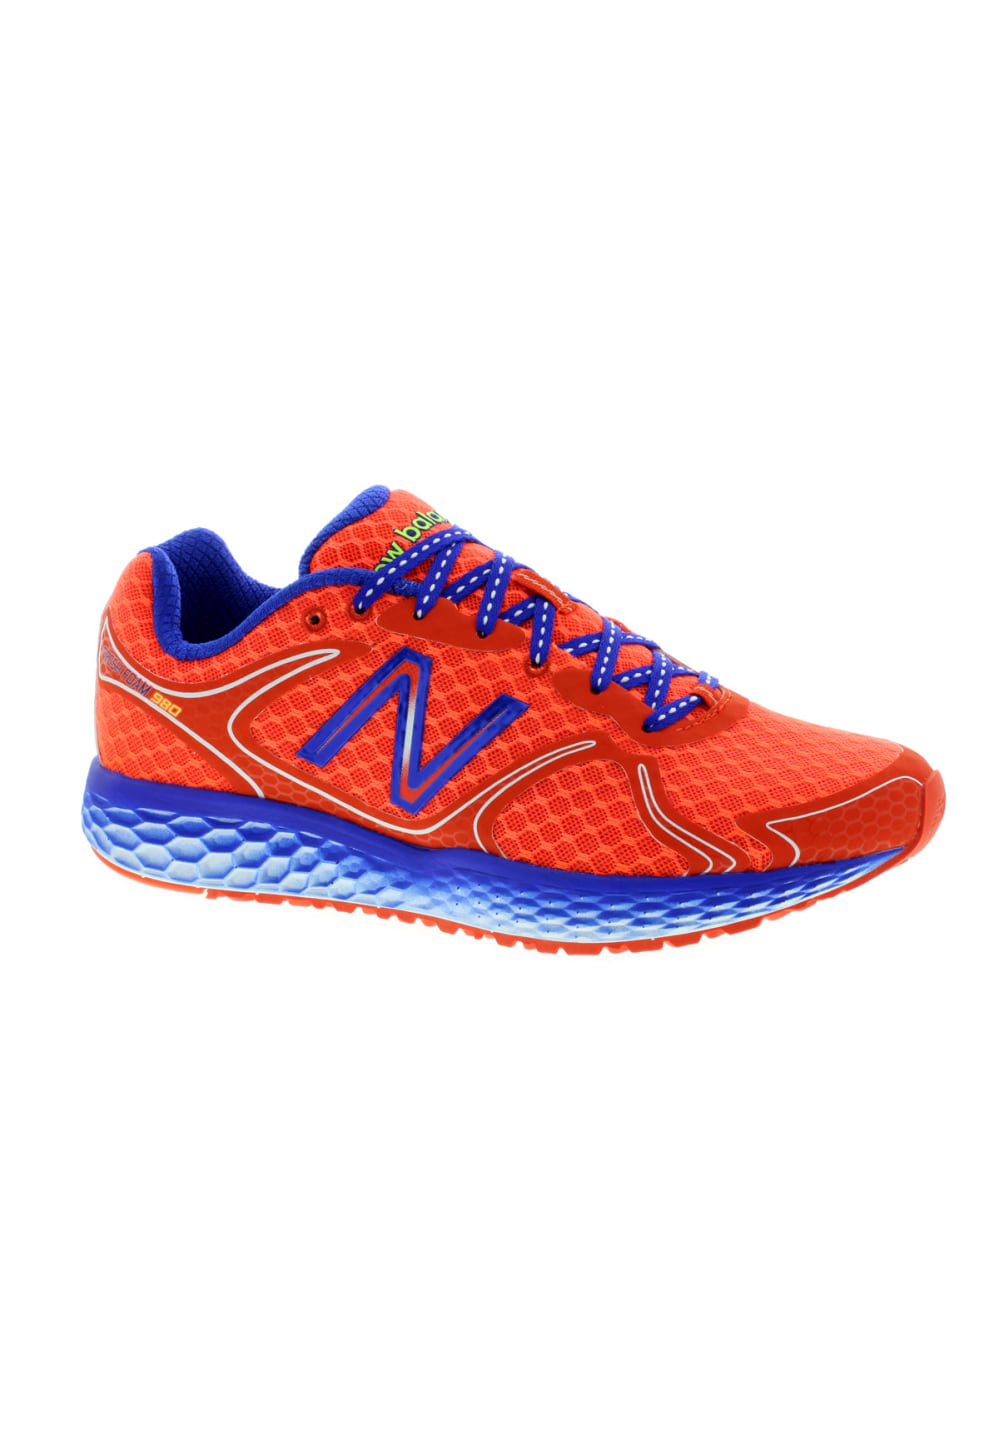 New Balance M 980 D Chaussures running pour Homme Rouge